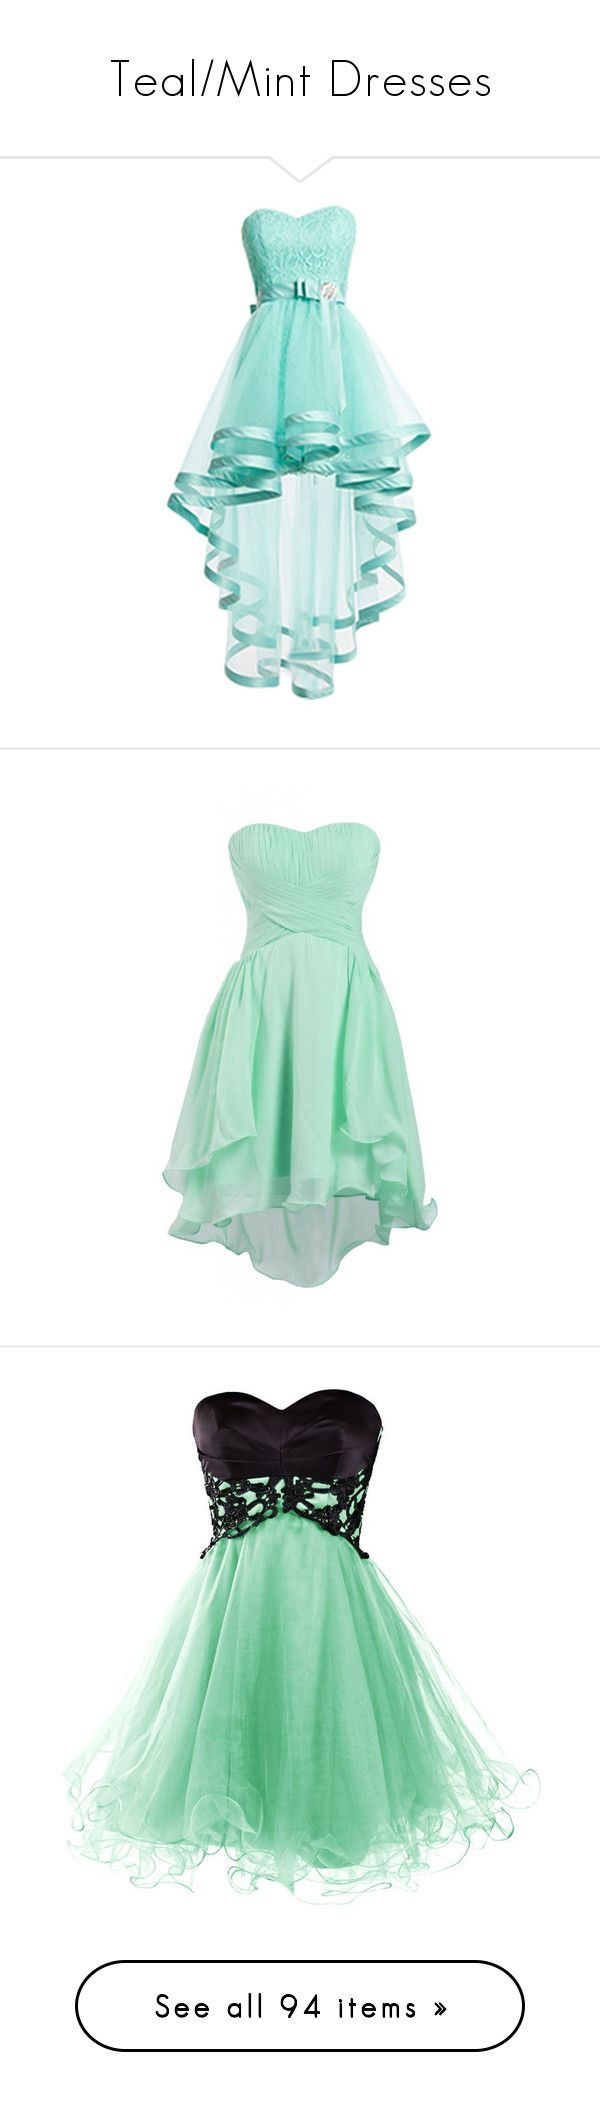 """""""Teal/Mint Dresses"""" by megsjessd99 ❤ liked on Polyvore featuring dresses, short dresses, blue, robes, blue lace dress, prom dresses, blue homecoming dresses, short homecoming dresses, lace prom dresses and chiffon bridesmaid dresses"""